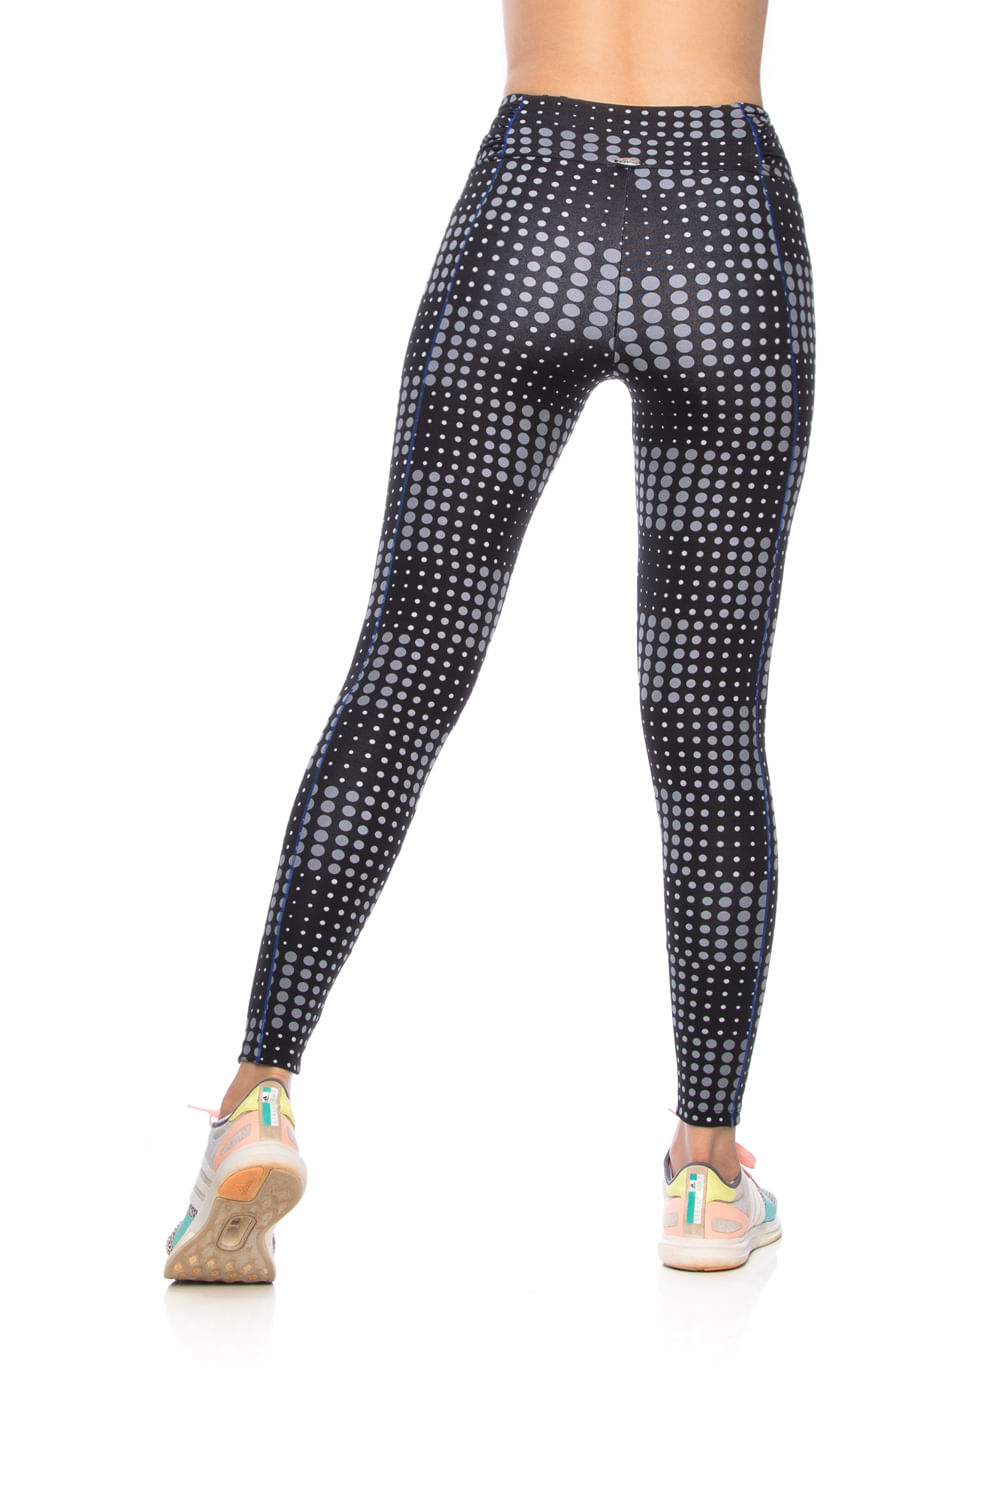 legging-fitness-cos-fit-estampada-moda-academia--3-